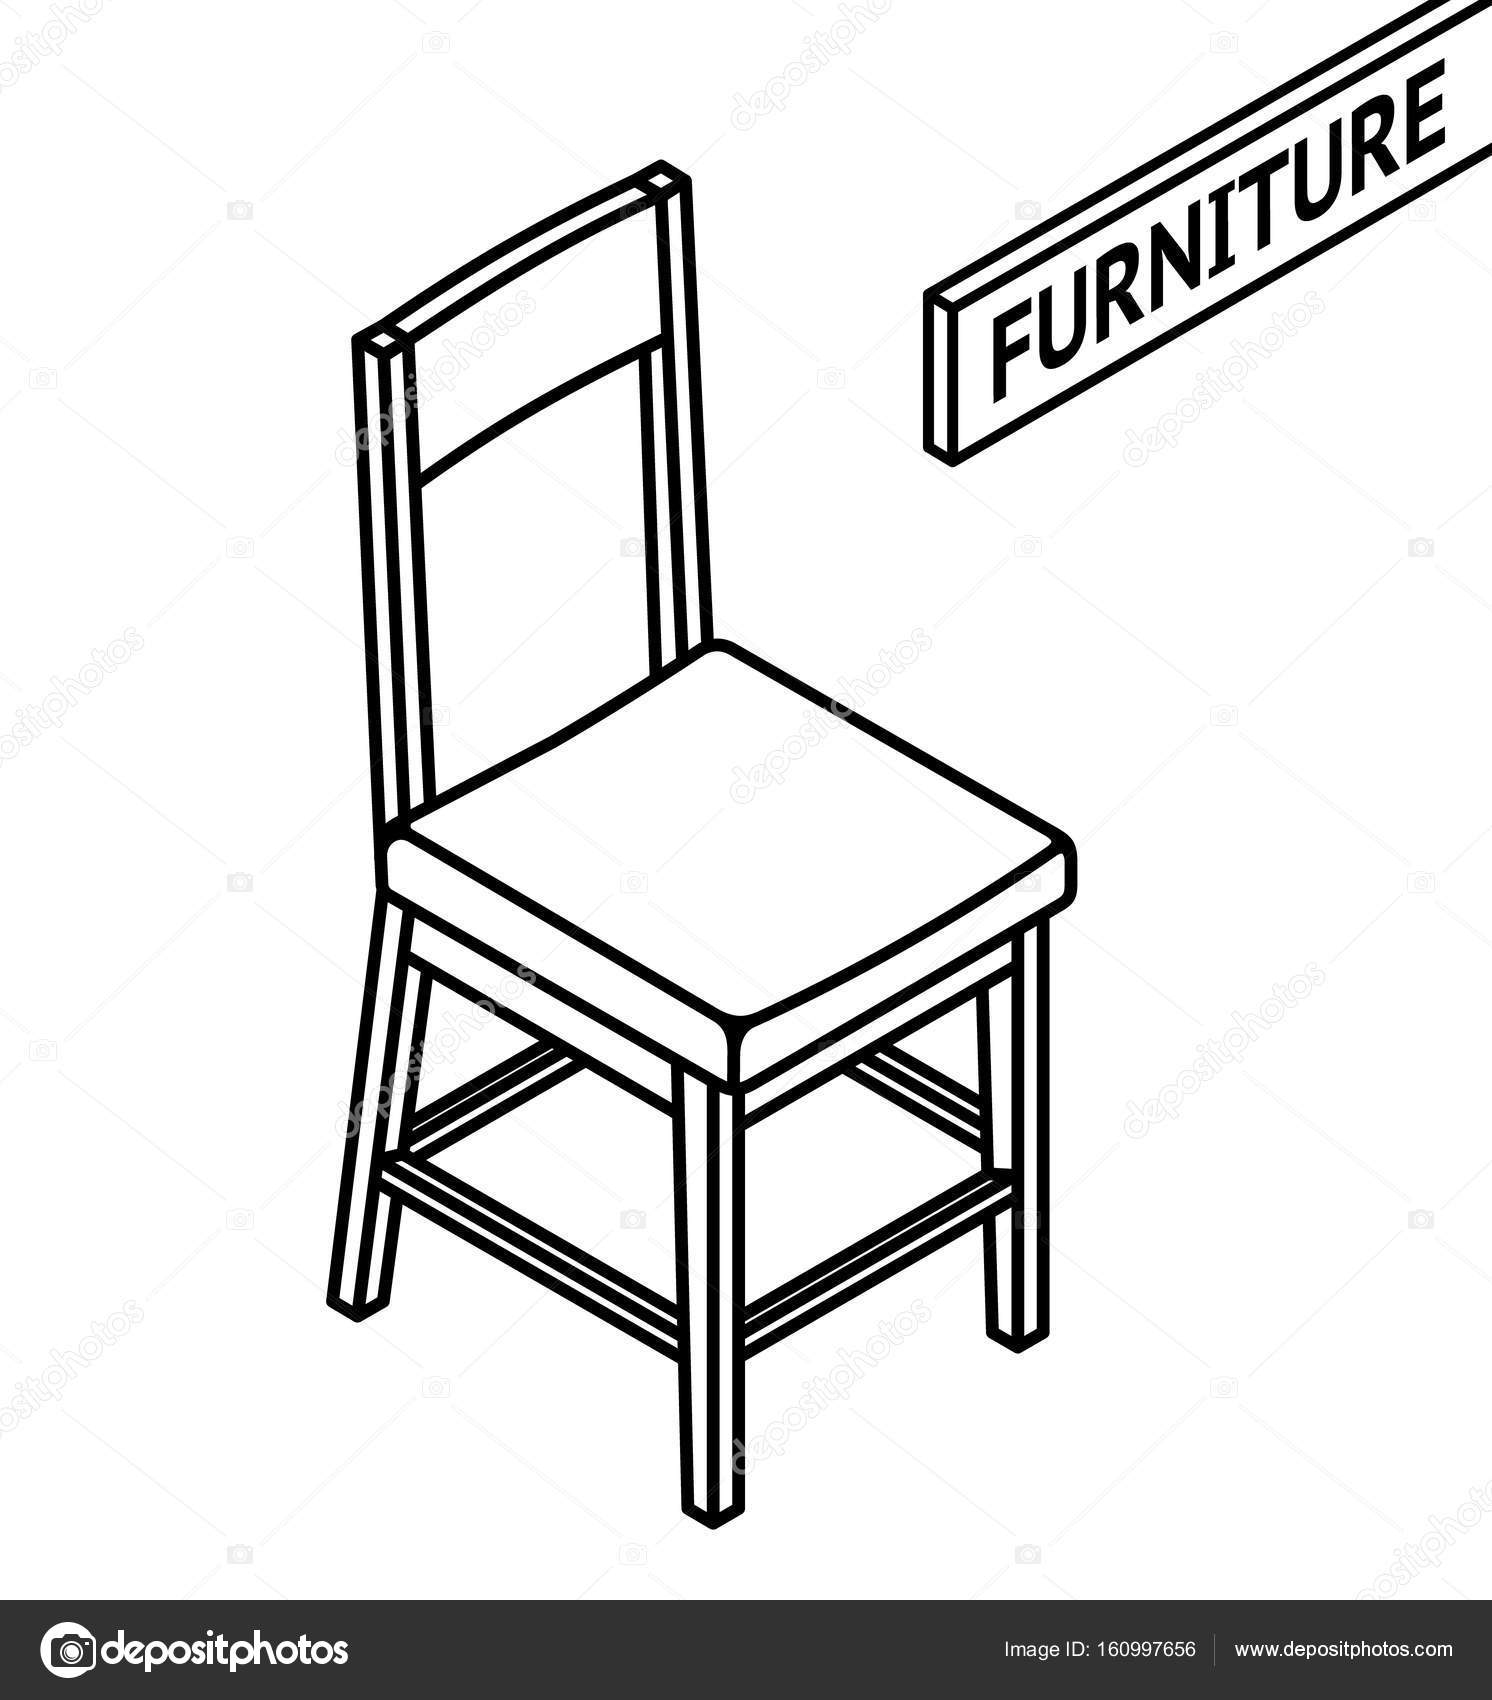 1492x1700 Isometric Outline Furniture. 3d Line Drawn Isometric Chair. White